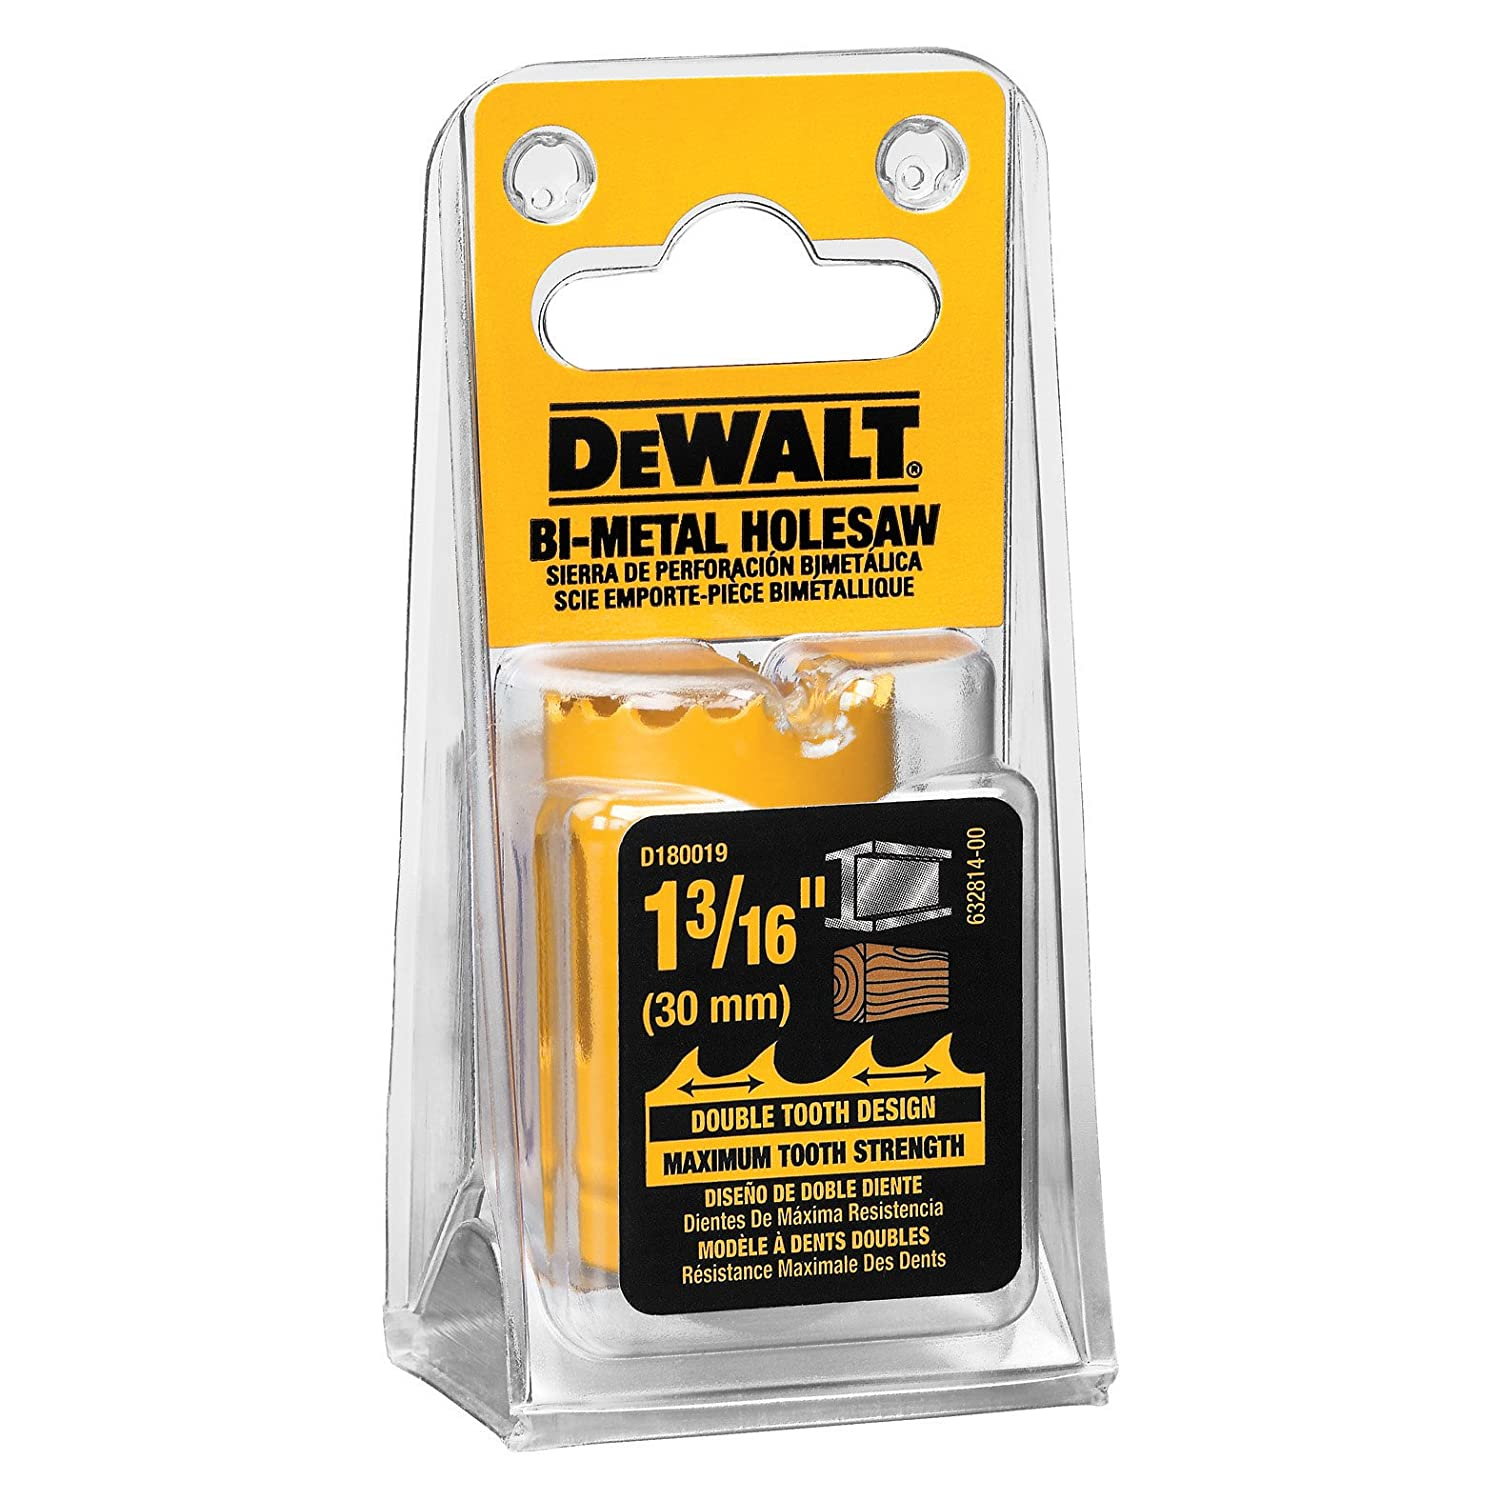 Dewalt D180019 1-3/16 Bi-Metal Hole Saw glass tile diamond hole saw 12mm 20mm 25mm 3 pieces